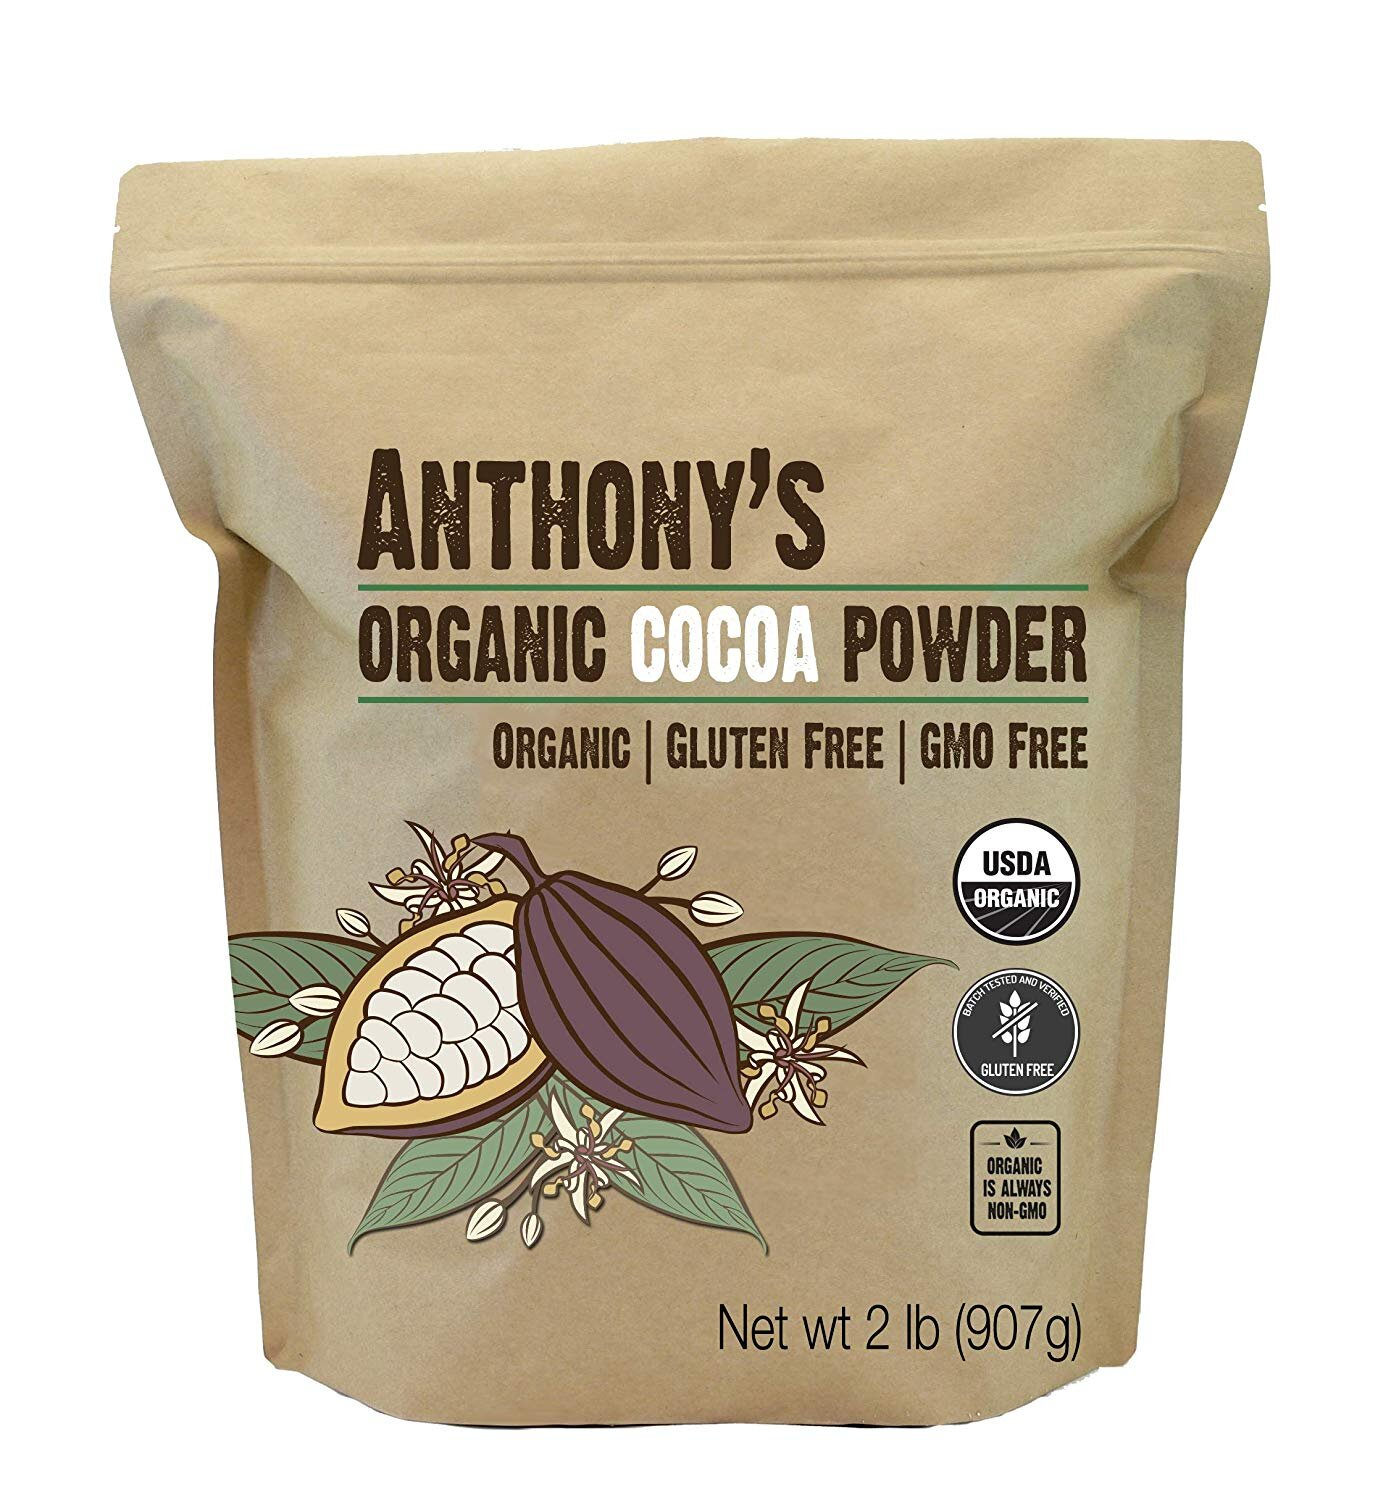 anthony's cocoa powder.jpg